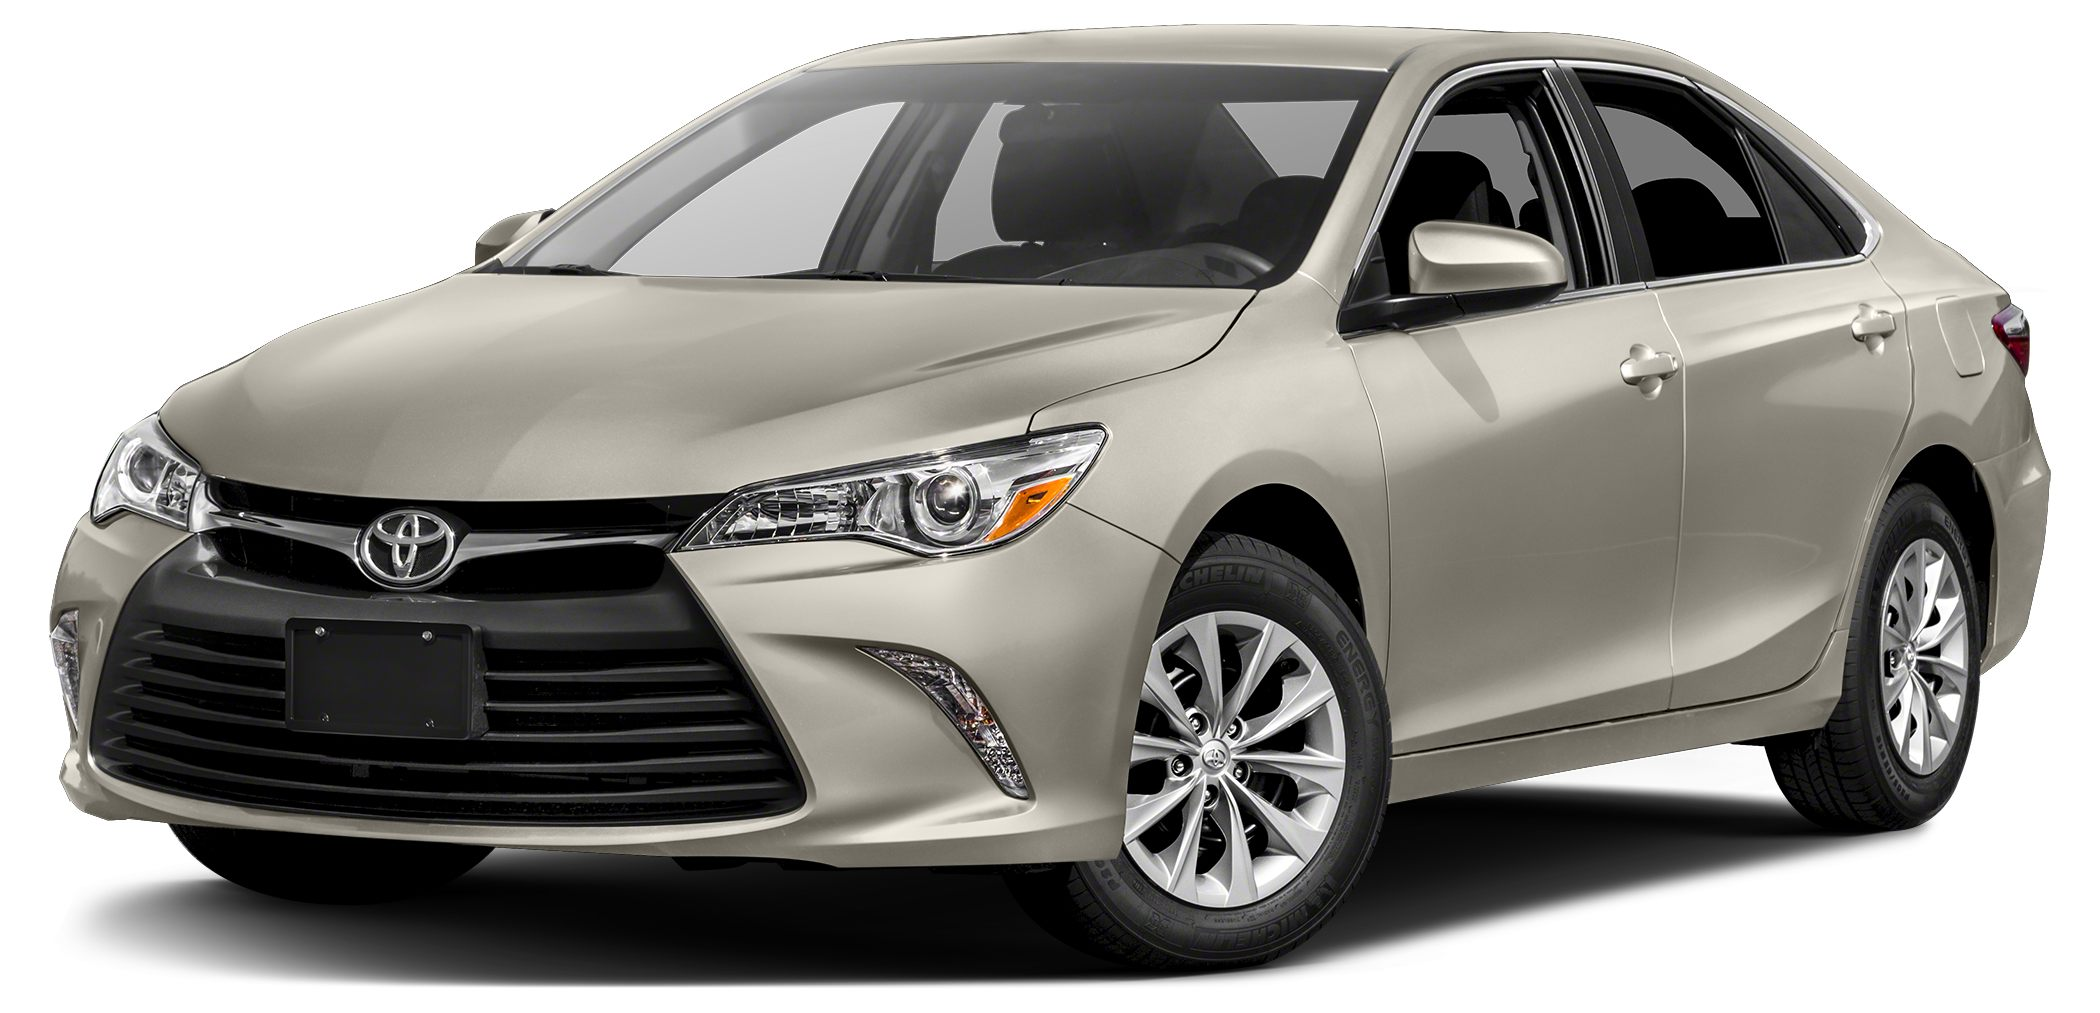 2017 Toyota Camry LE CREME BRULEE MICA exterior and ALMOND interior LE trim FUEL EFFICIENT 33 MP